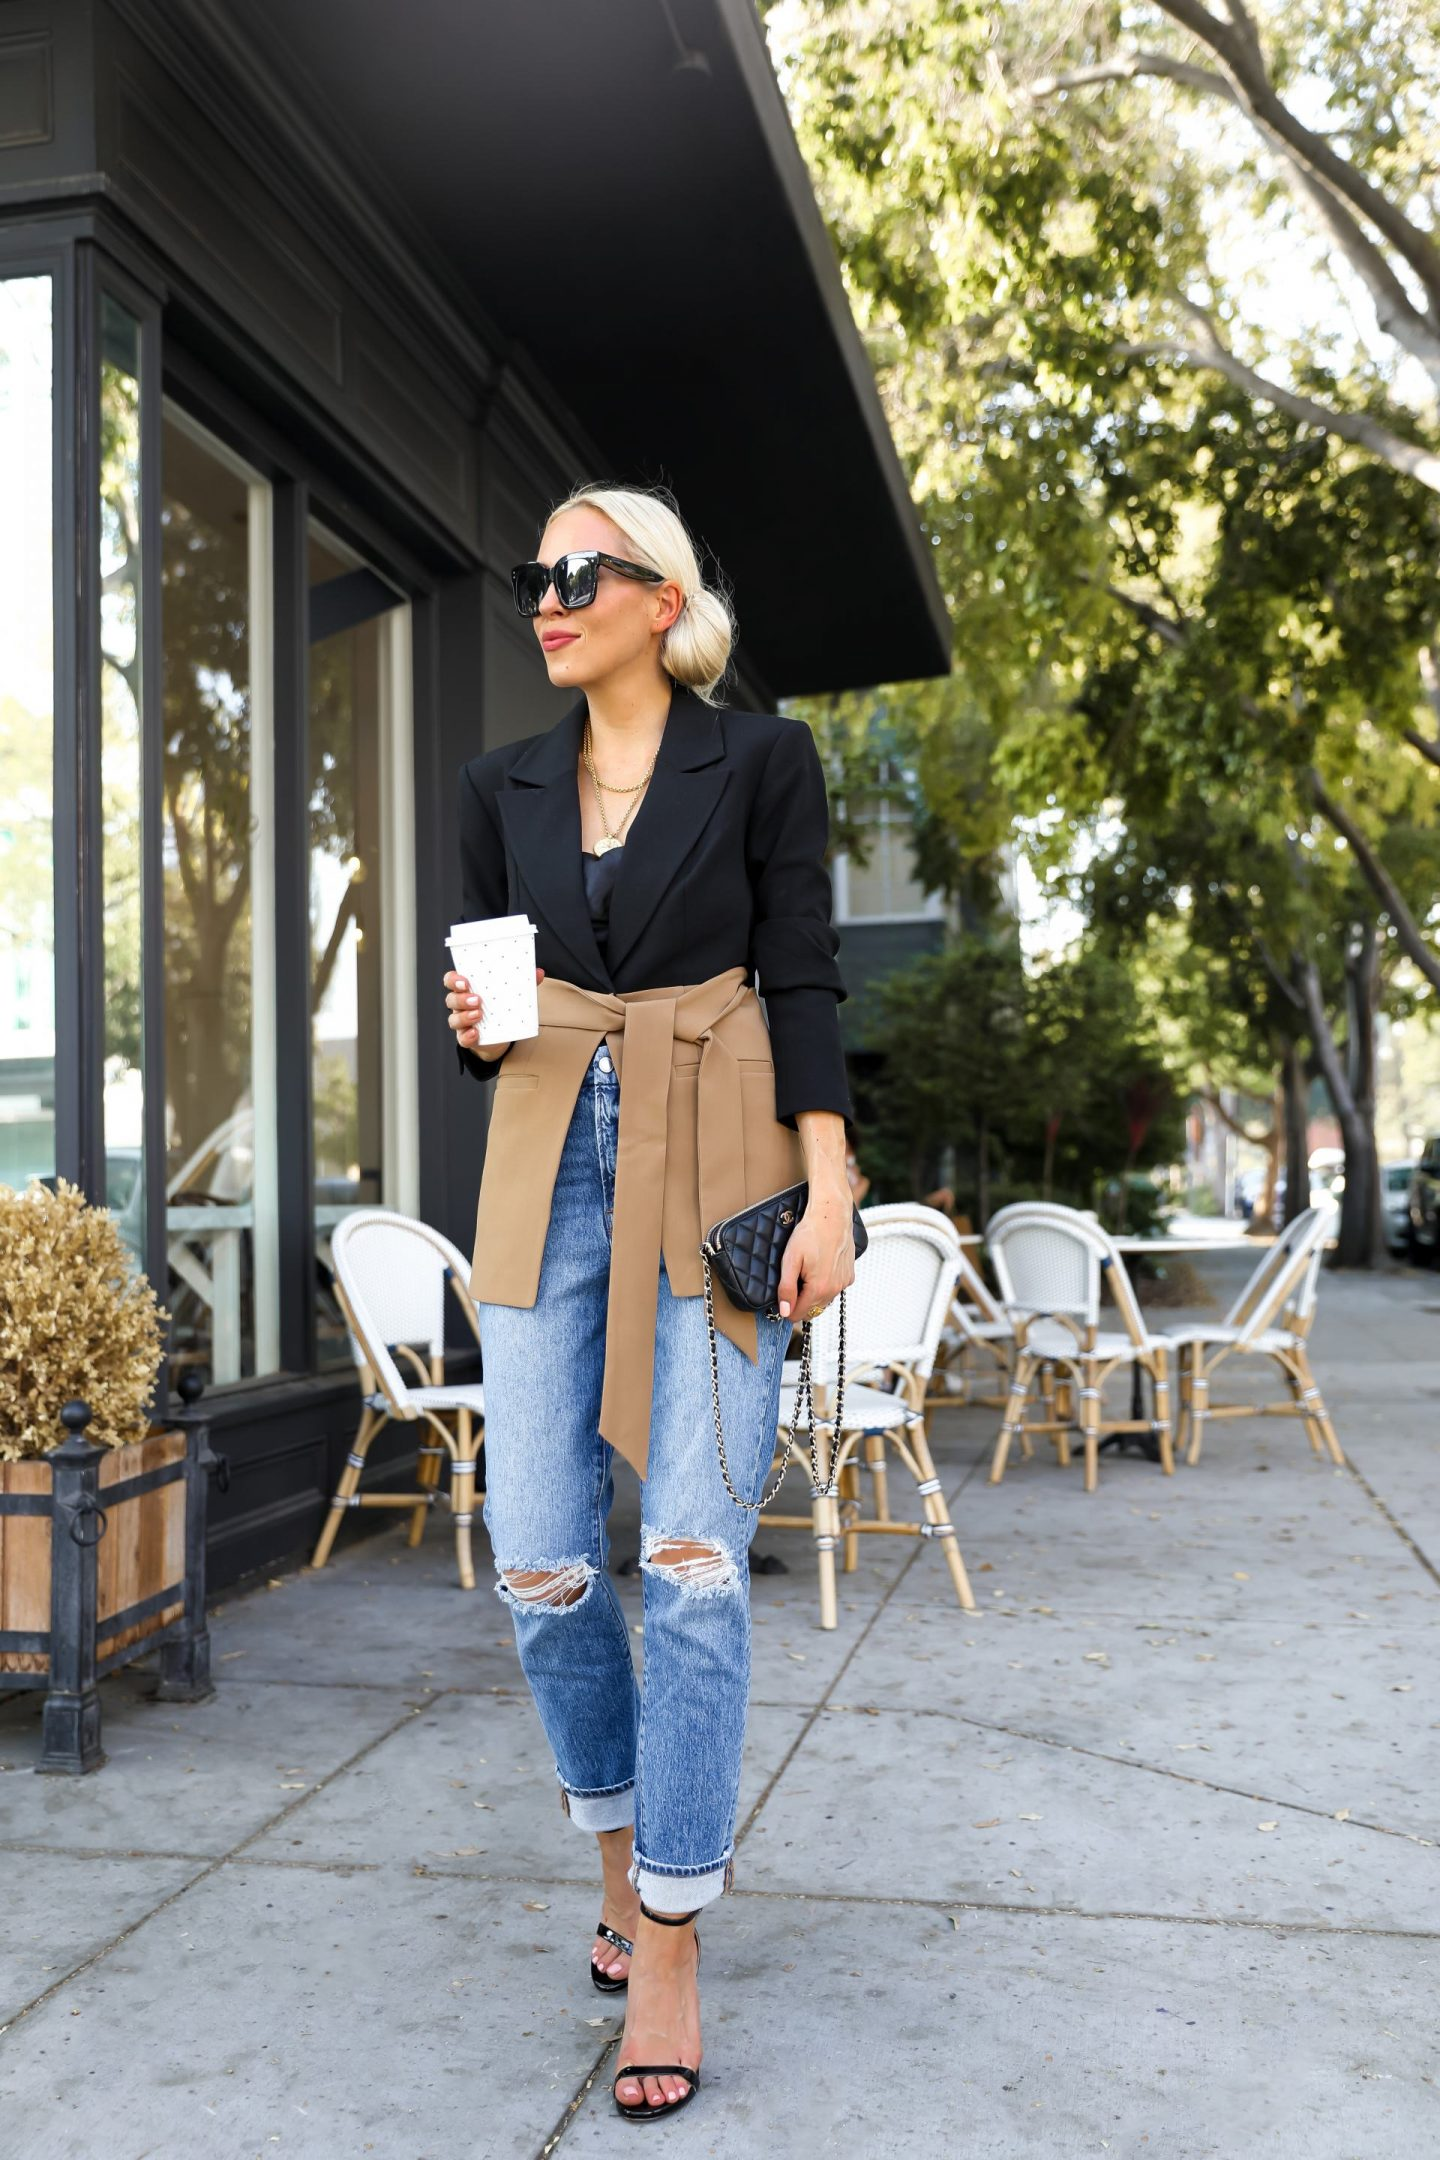 Good American side slit two-tone blazer, with denim casual chic style, by San Francisco fashion blogger Lombard & Fifth. French coffee shop.